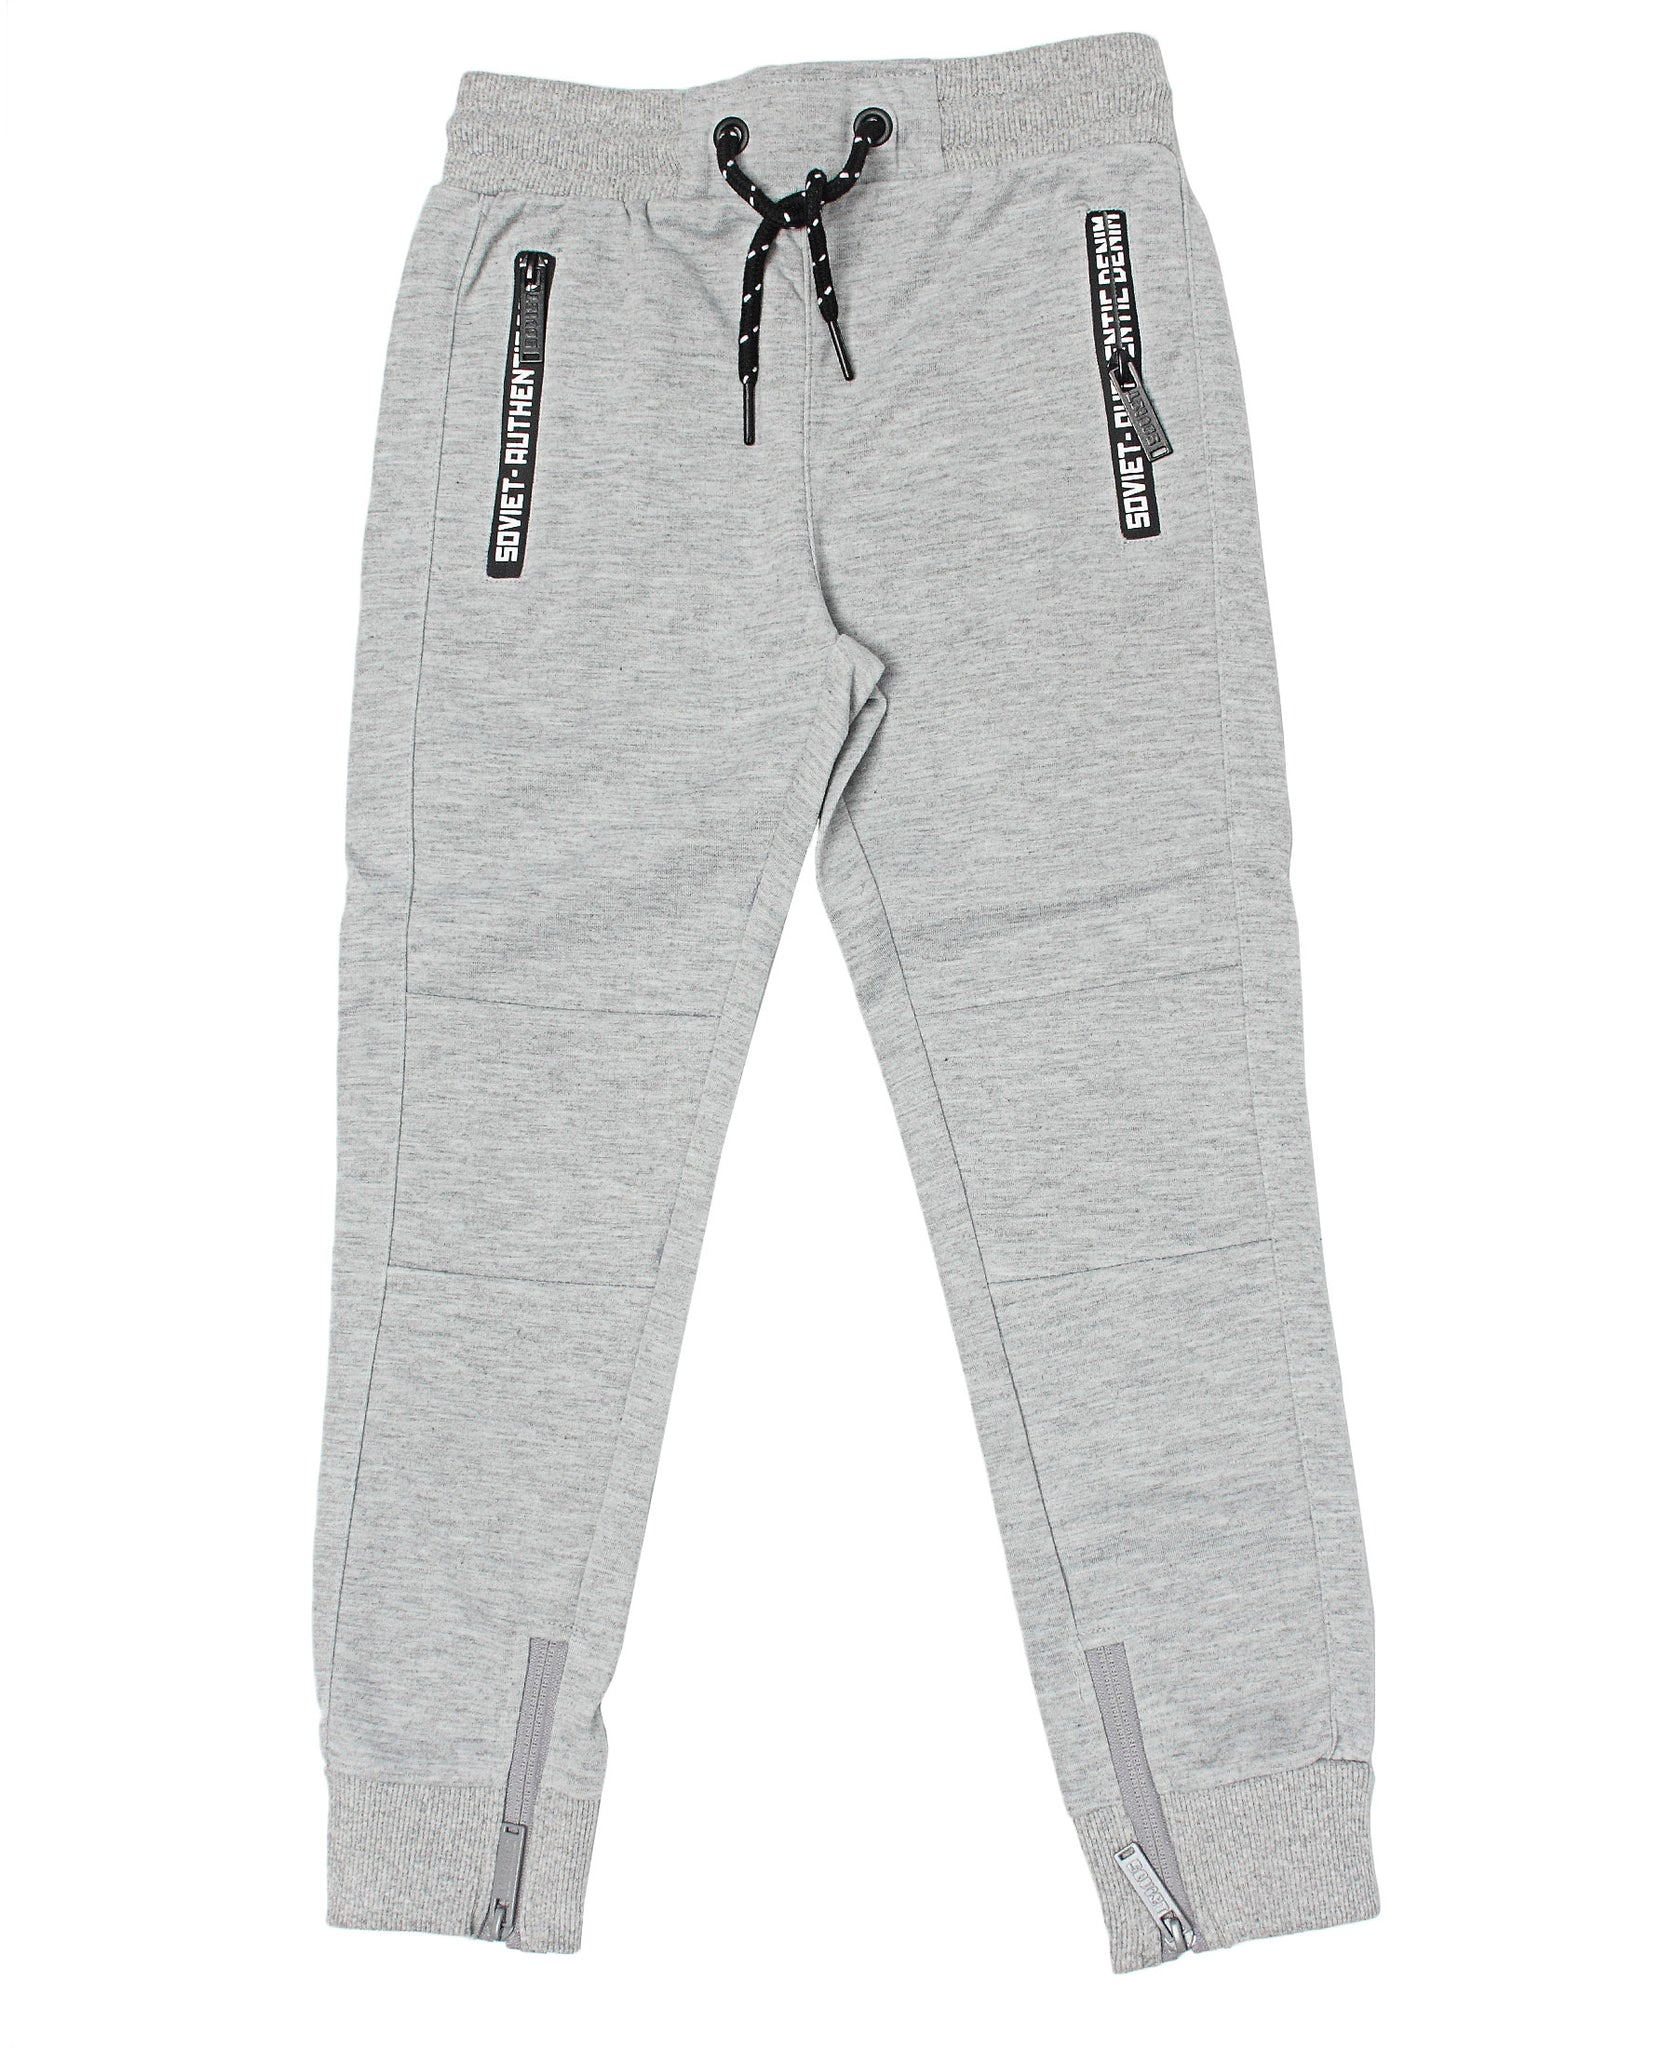 Boys Compton Trackpants - Light Grey